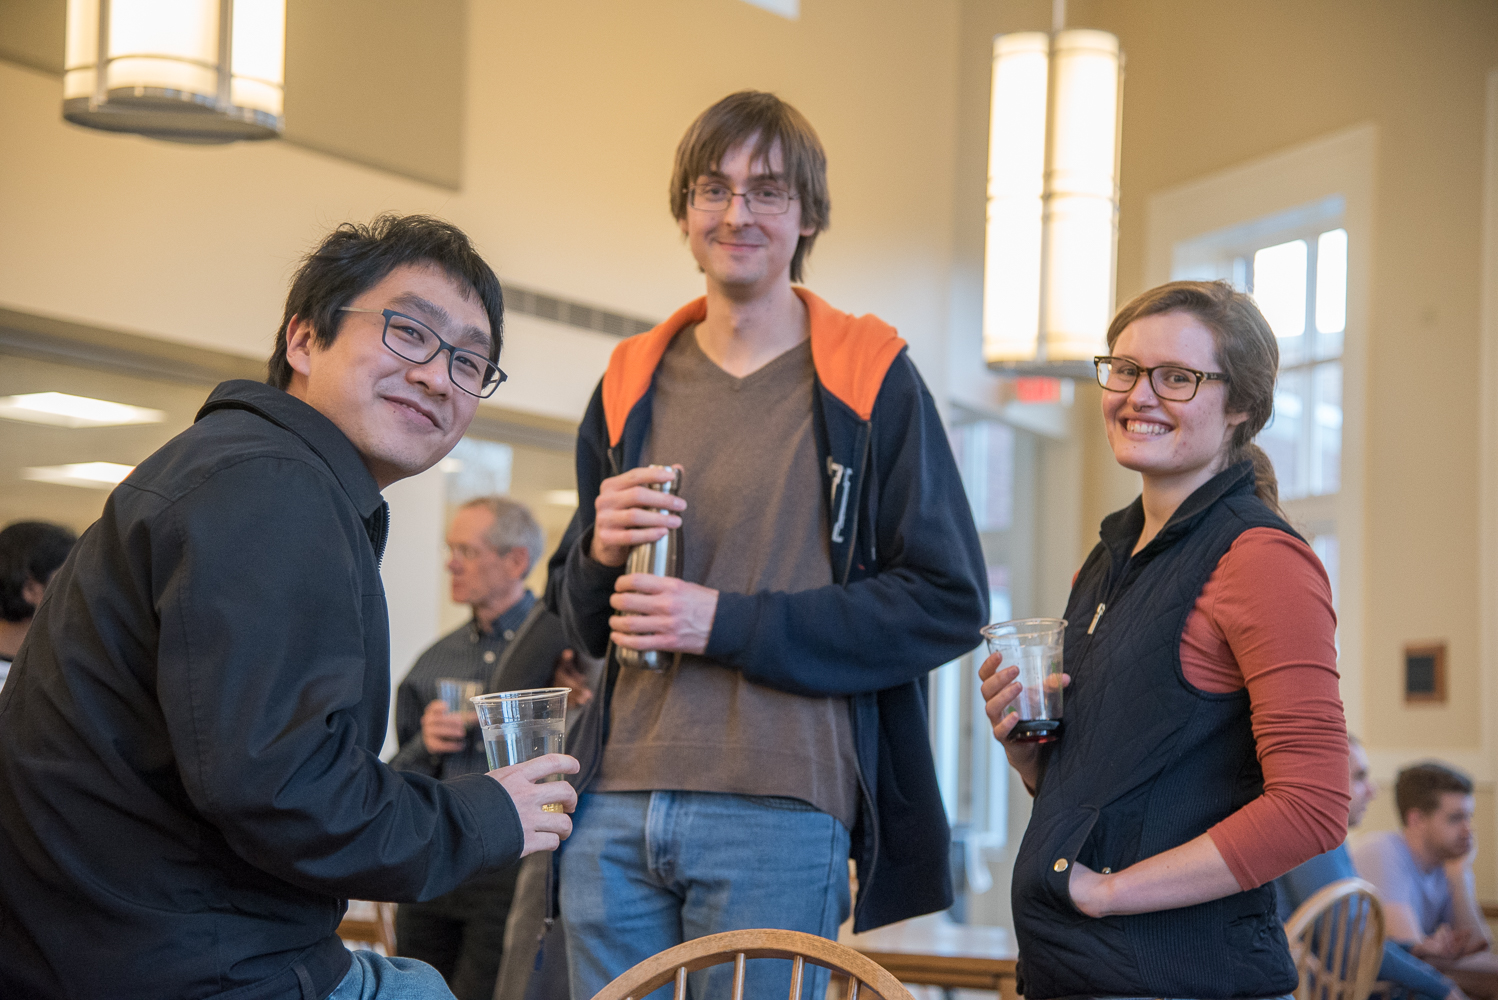 Celebration after PhD qualifying exams were over!  Photo credit: Prof. Jim Demas